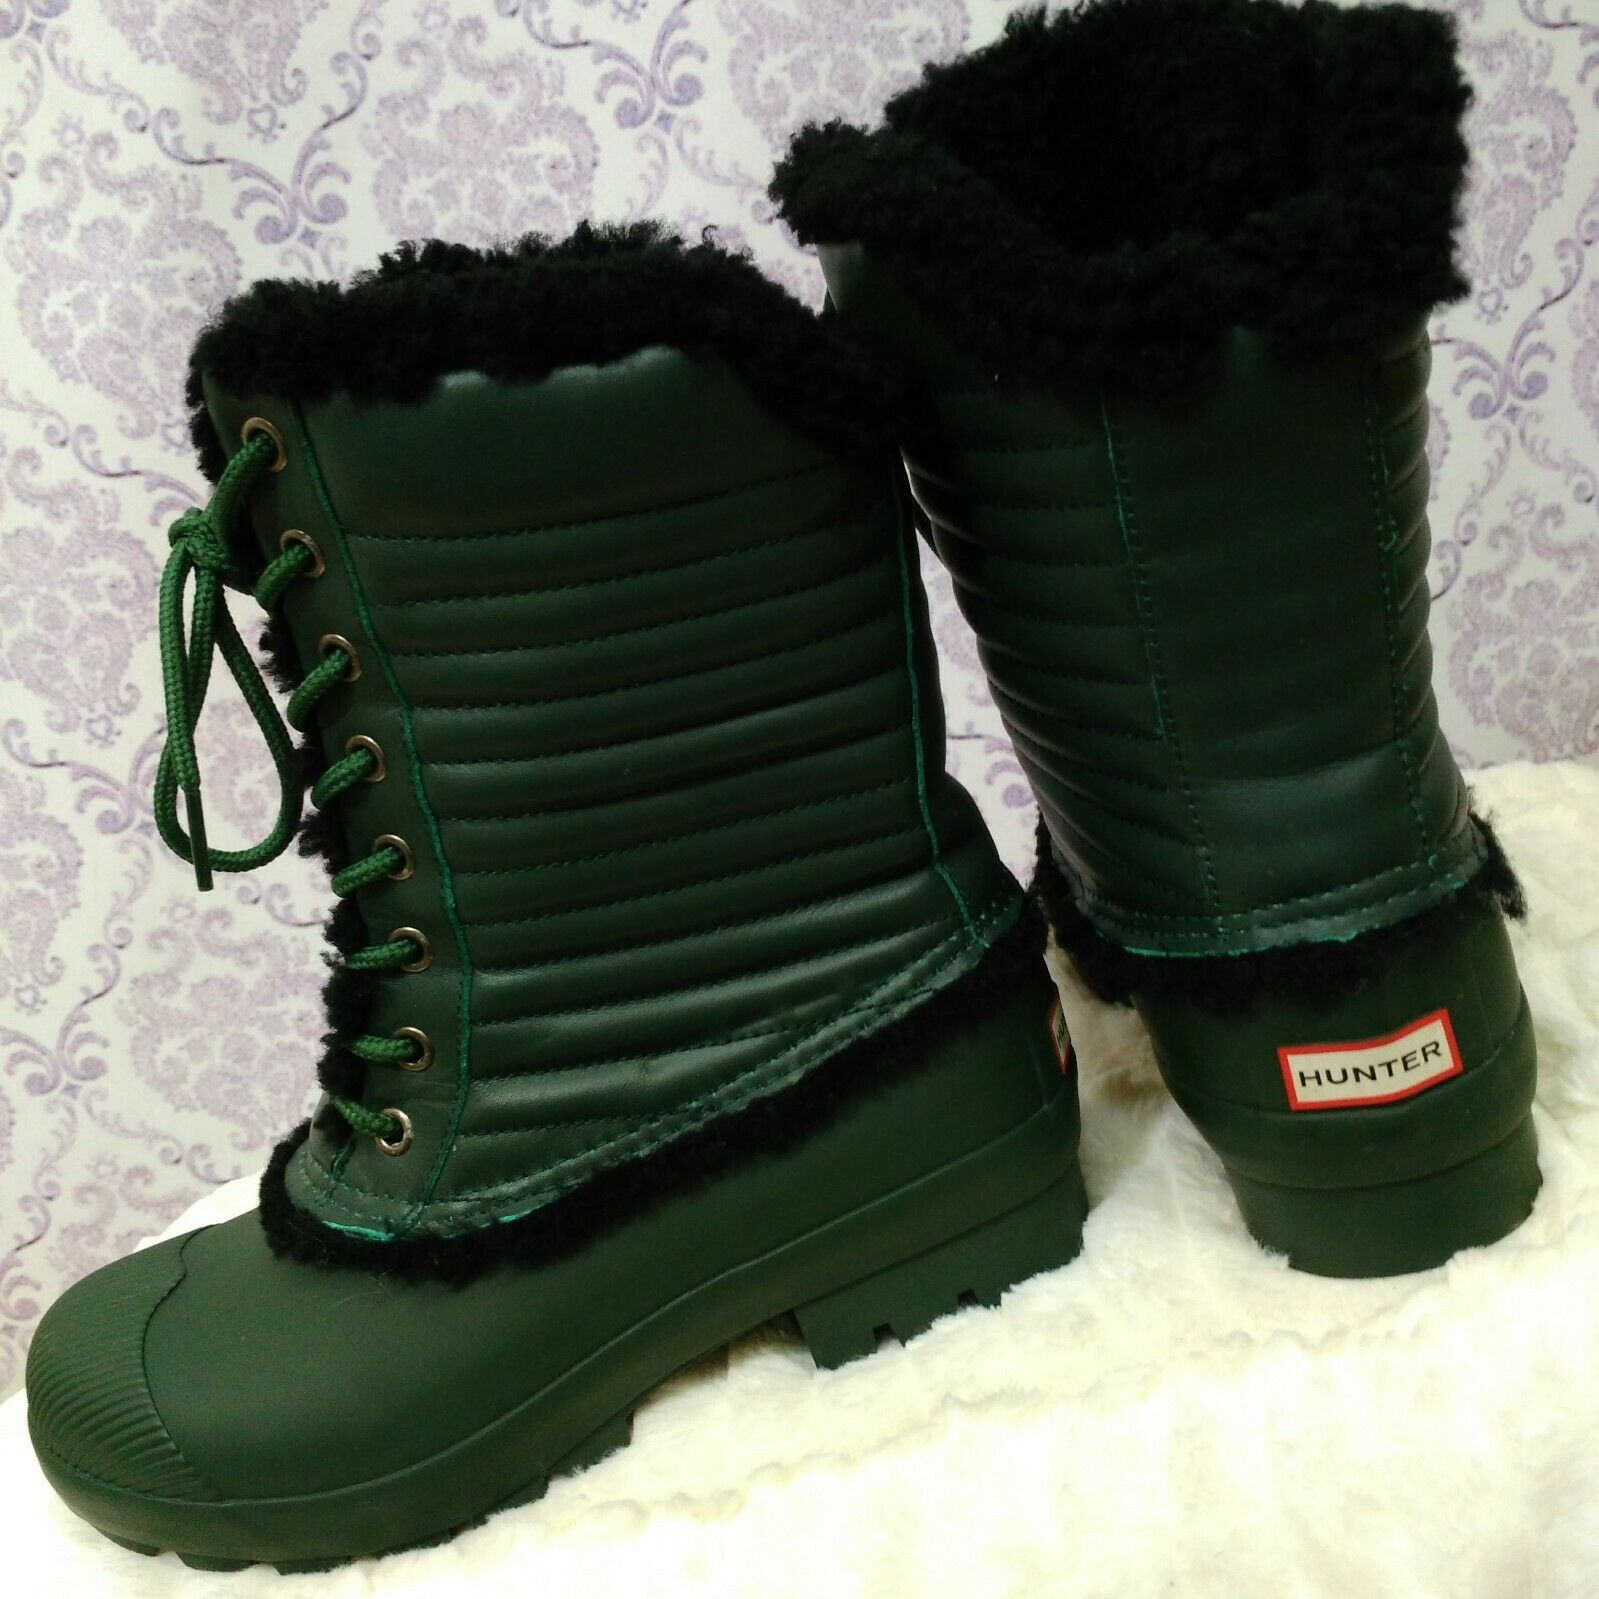 Hunter Rain stivali donna US 7 Shearling Lined Leather Mid Calf Lace Up verde